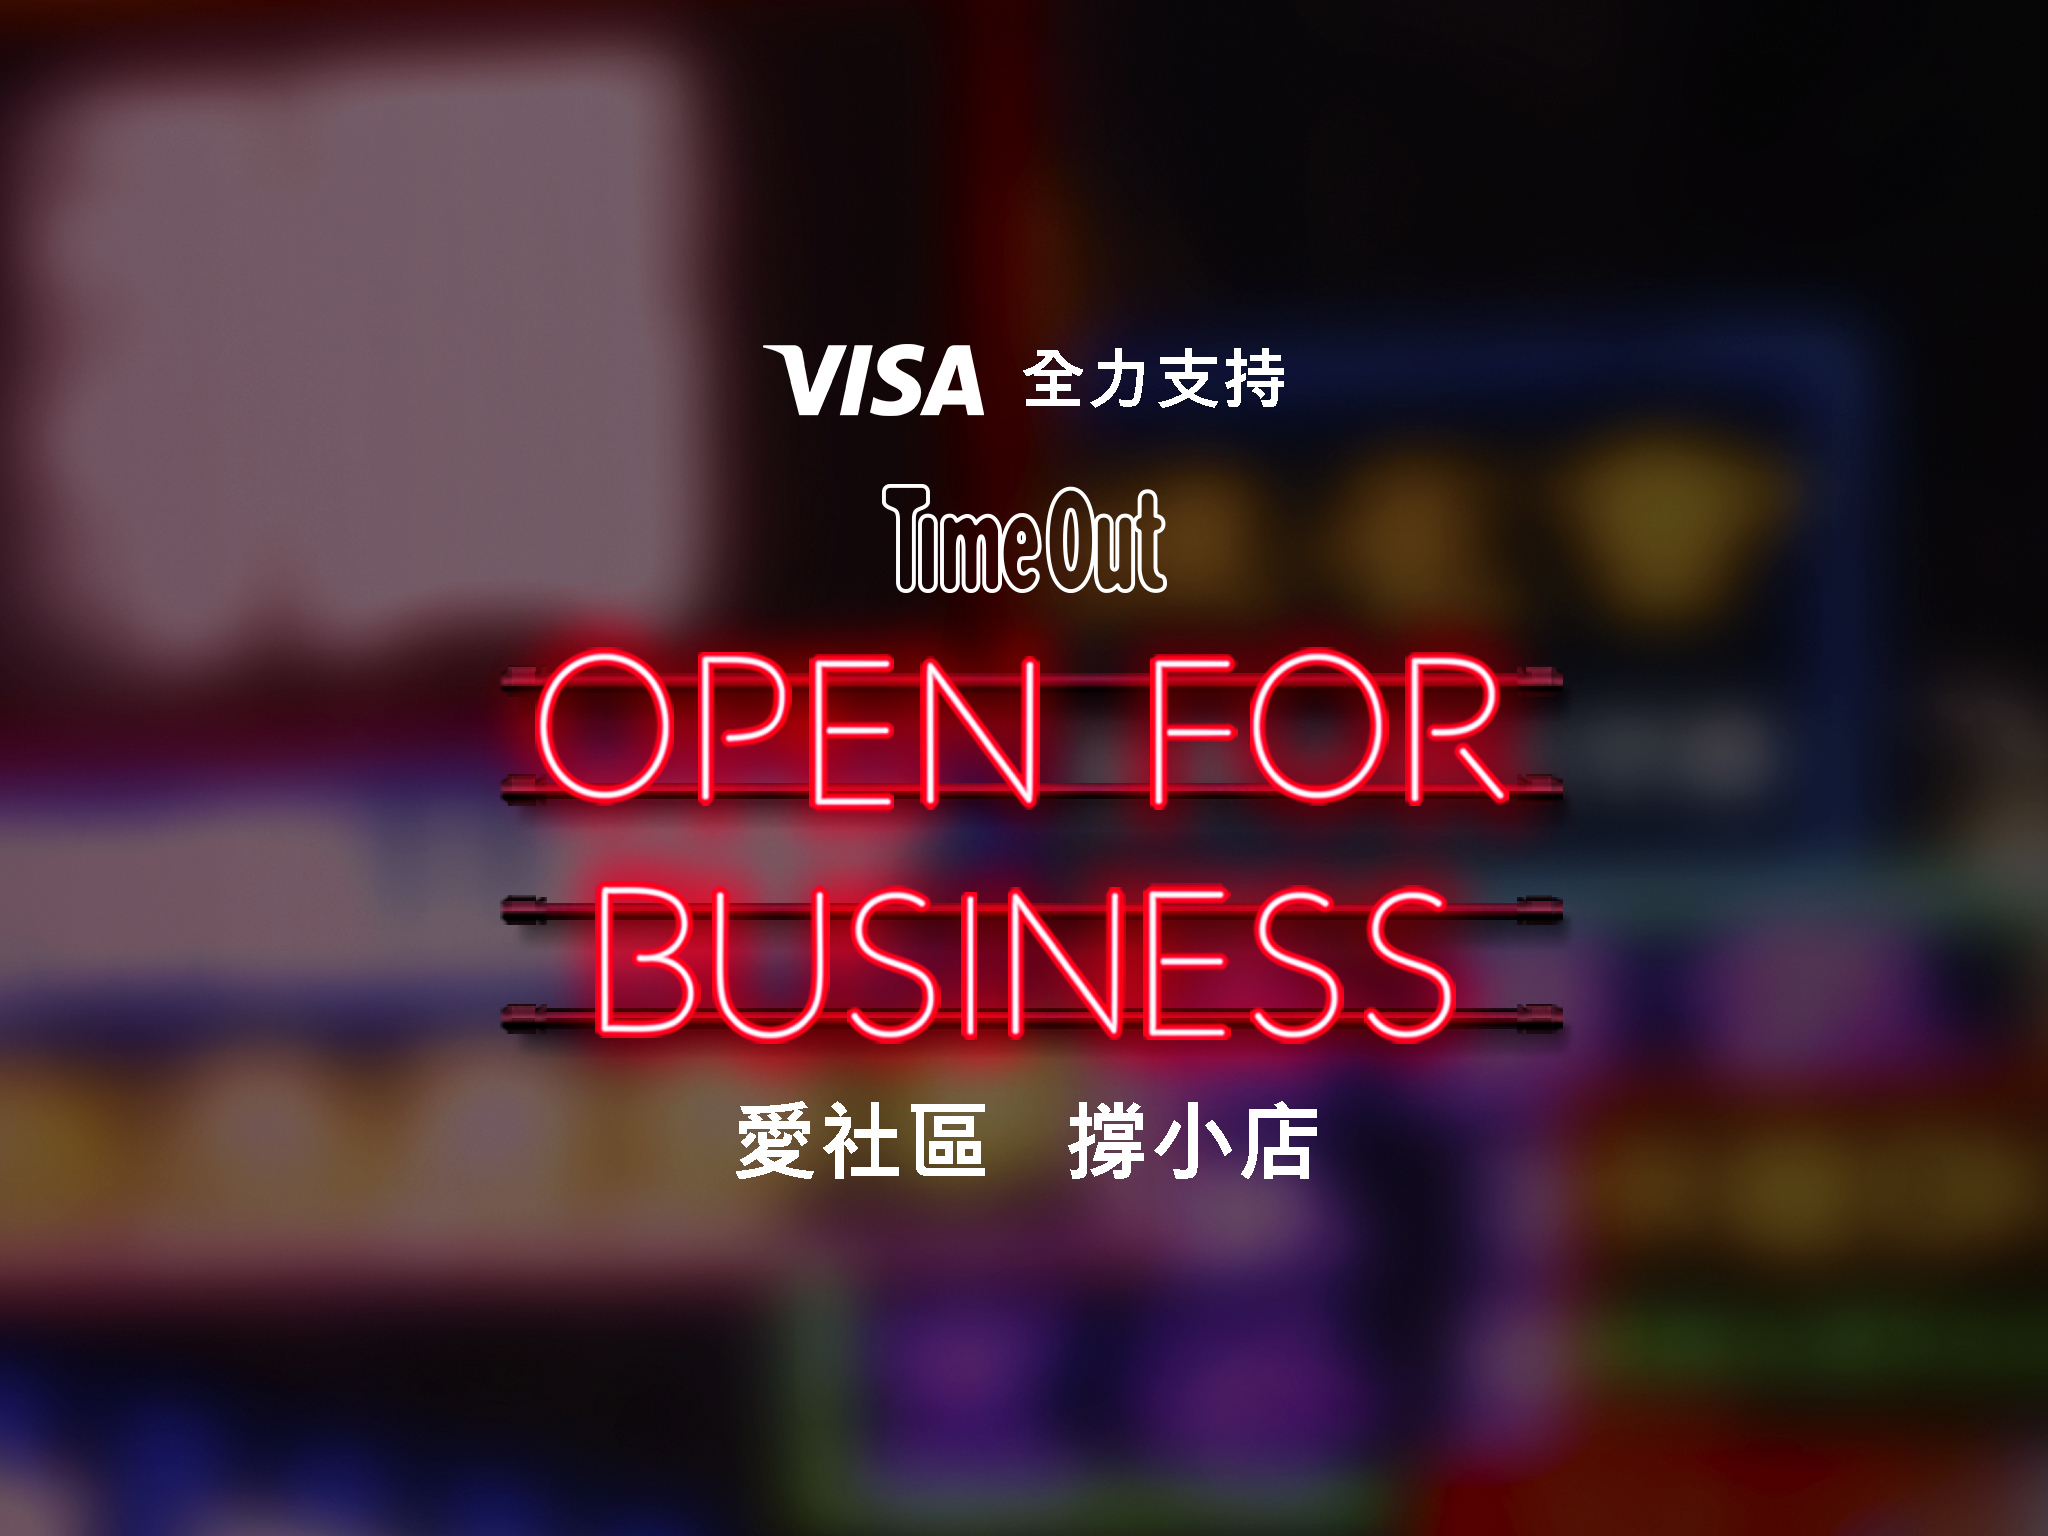 open for business hk